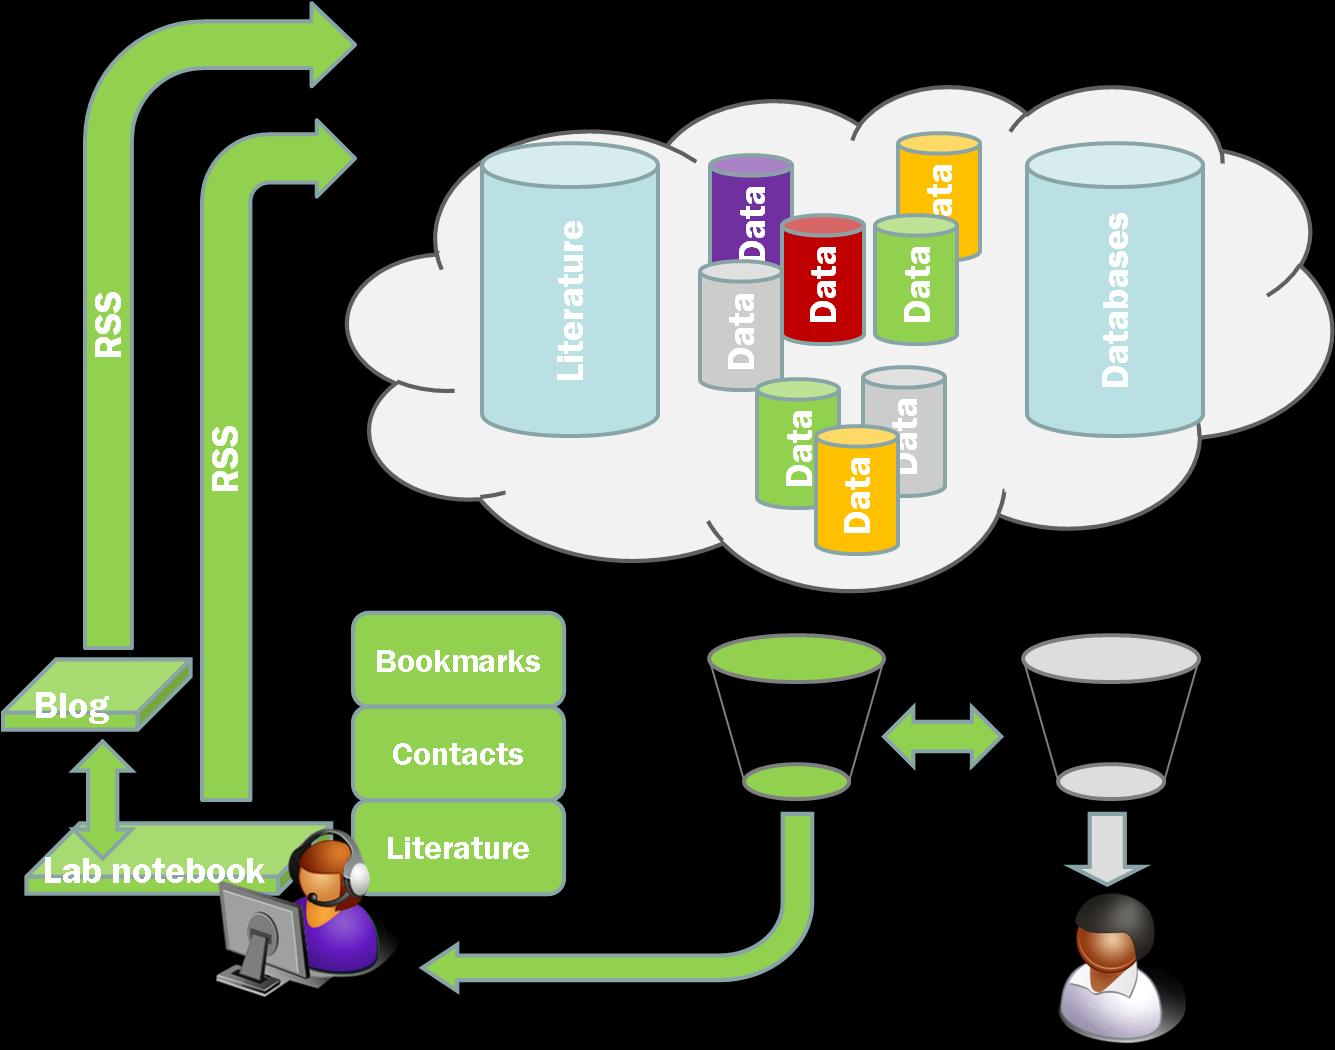 Data flow and sharing